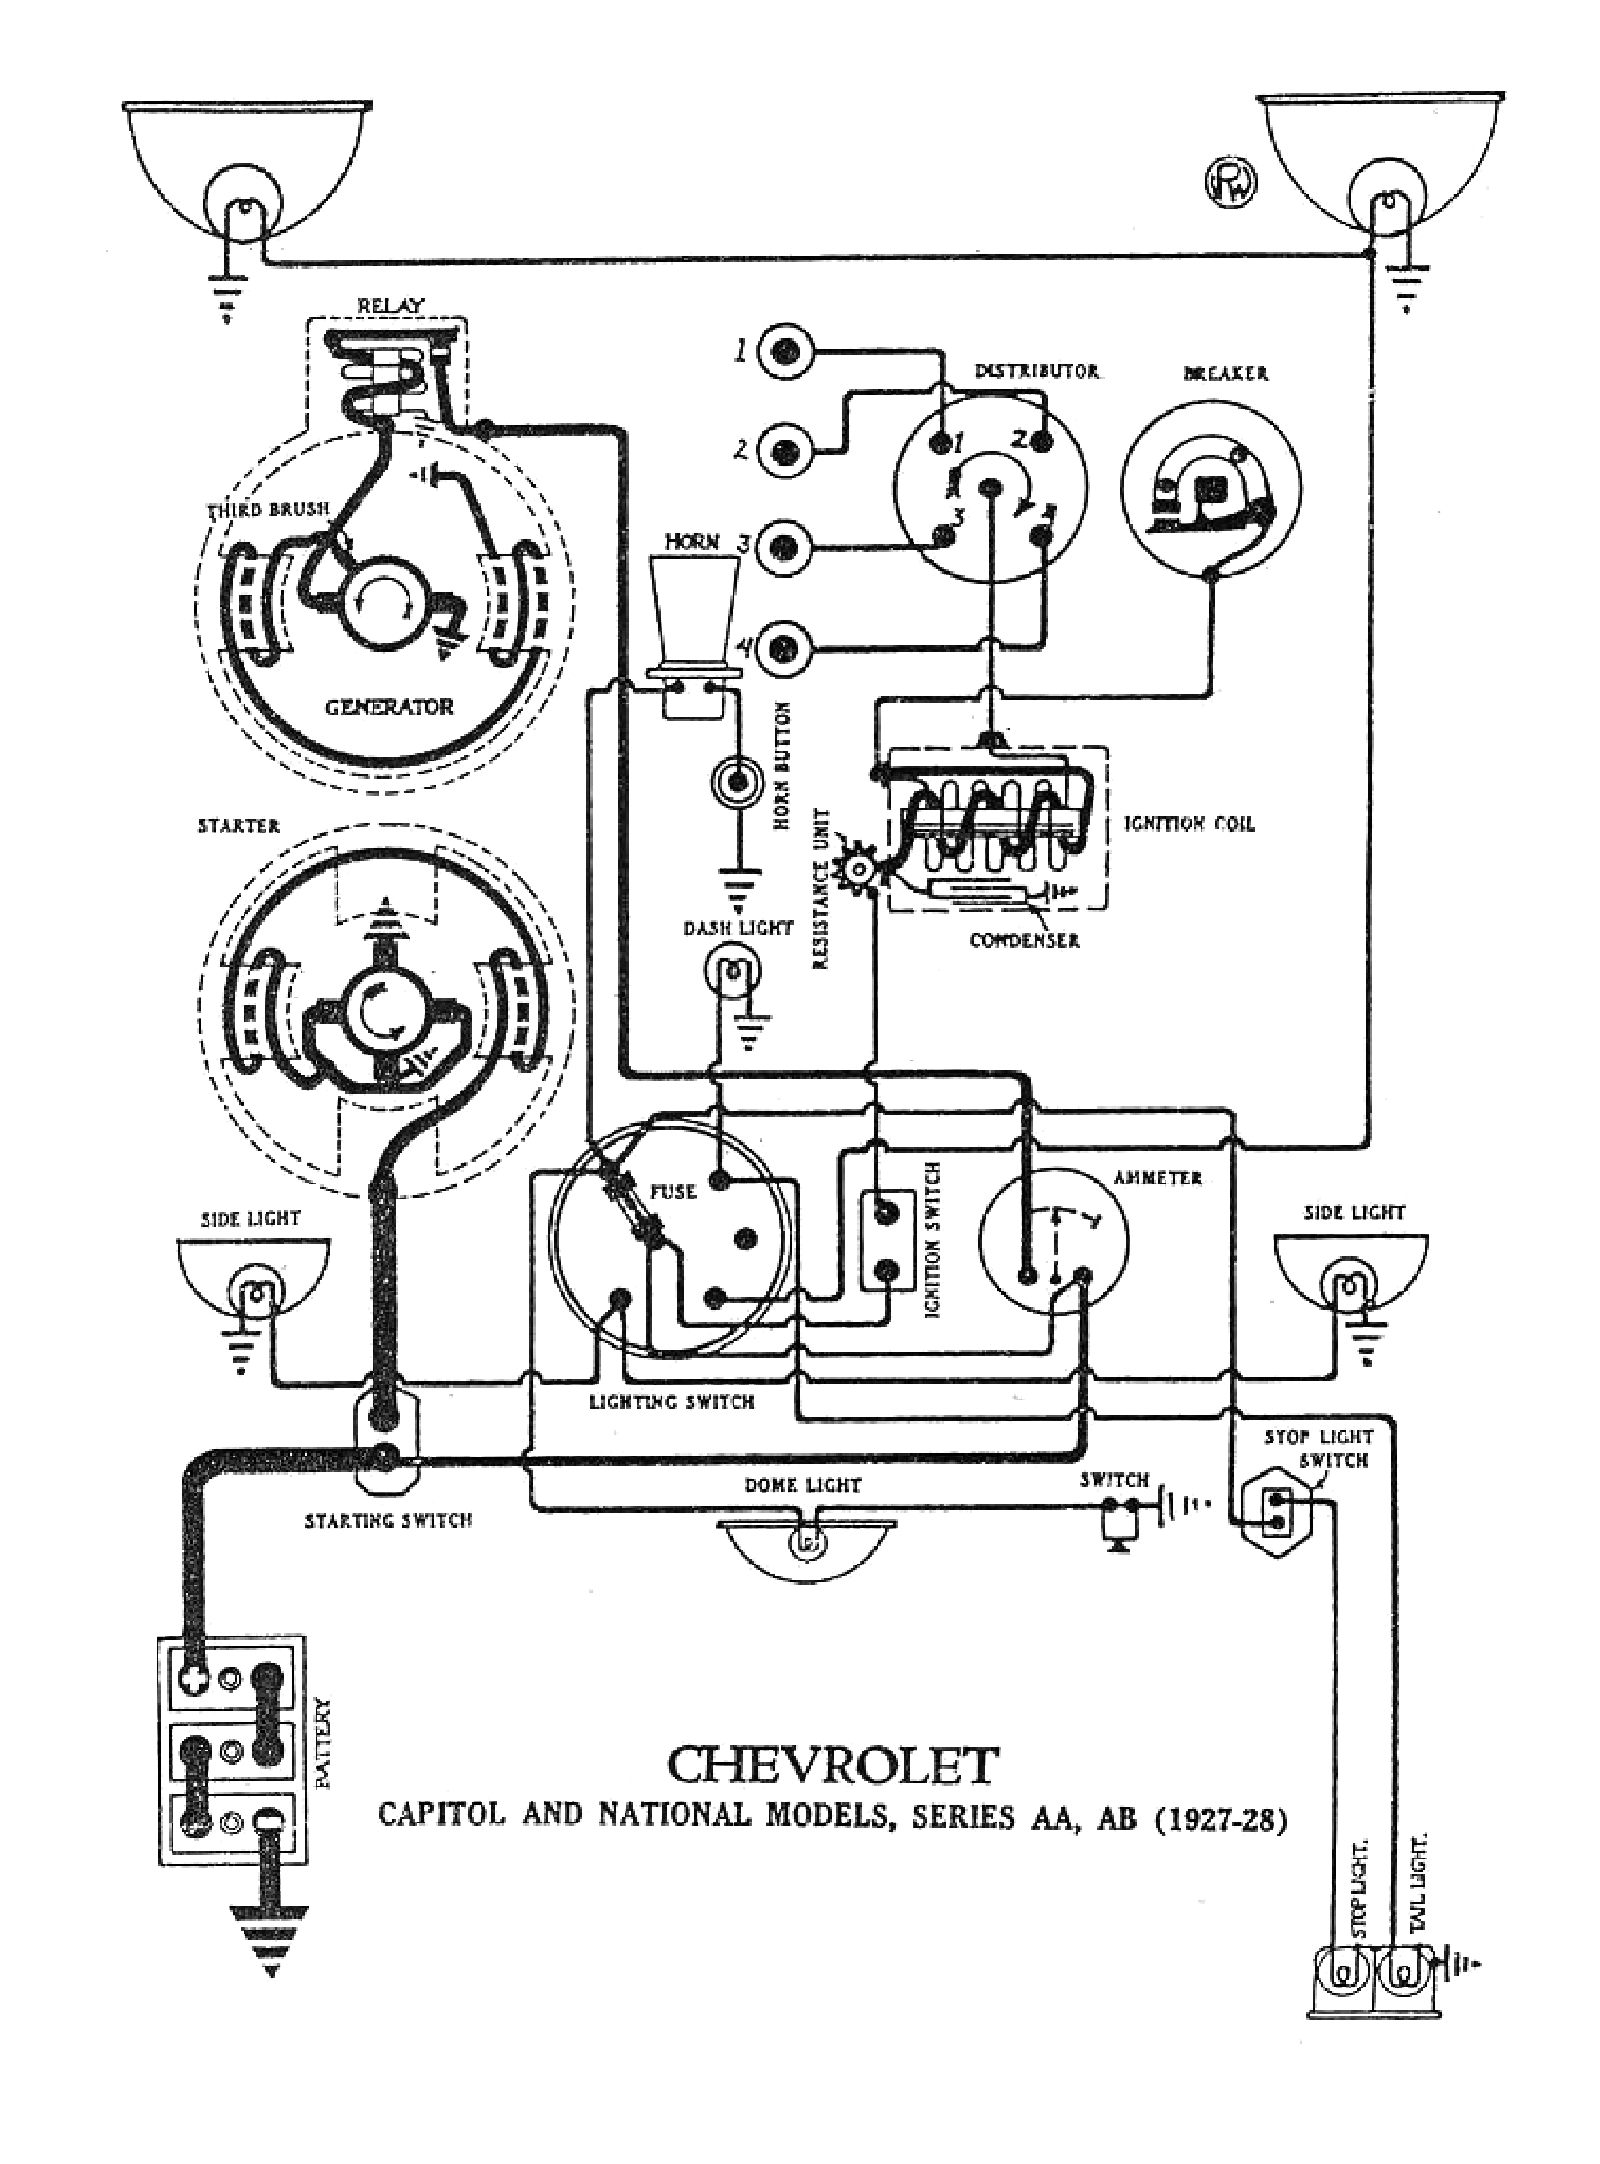 chevy wiring diagramsPush Button Radio Circuit Diagram For The 1954 Chevrolet #5